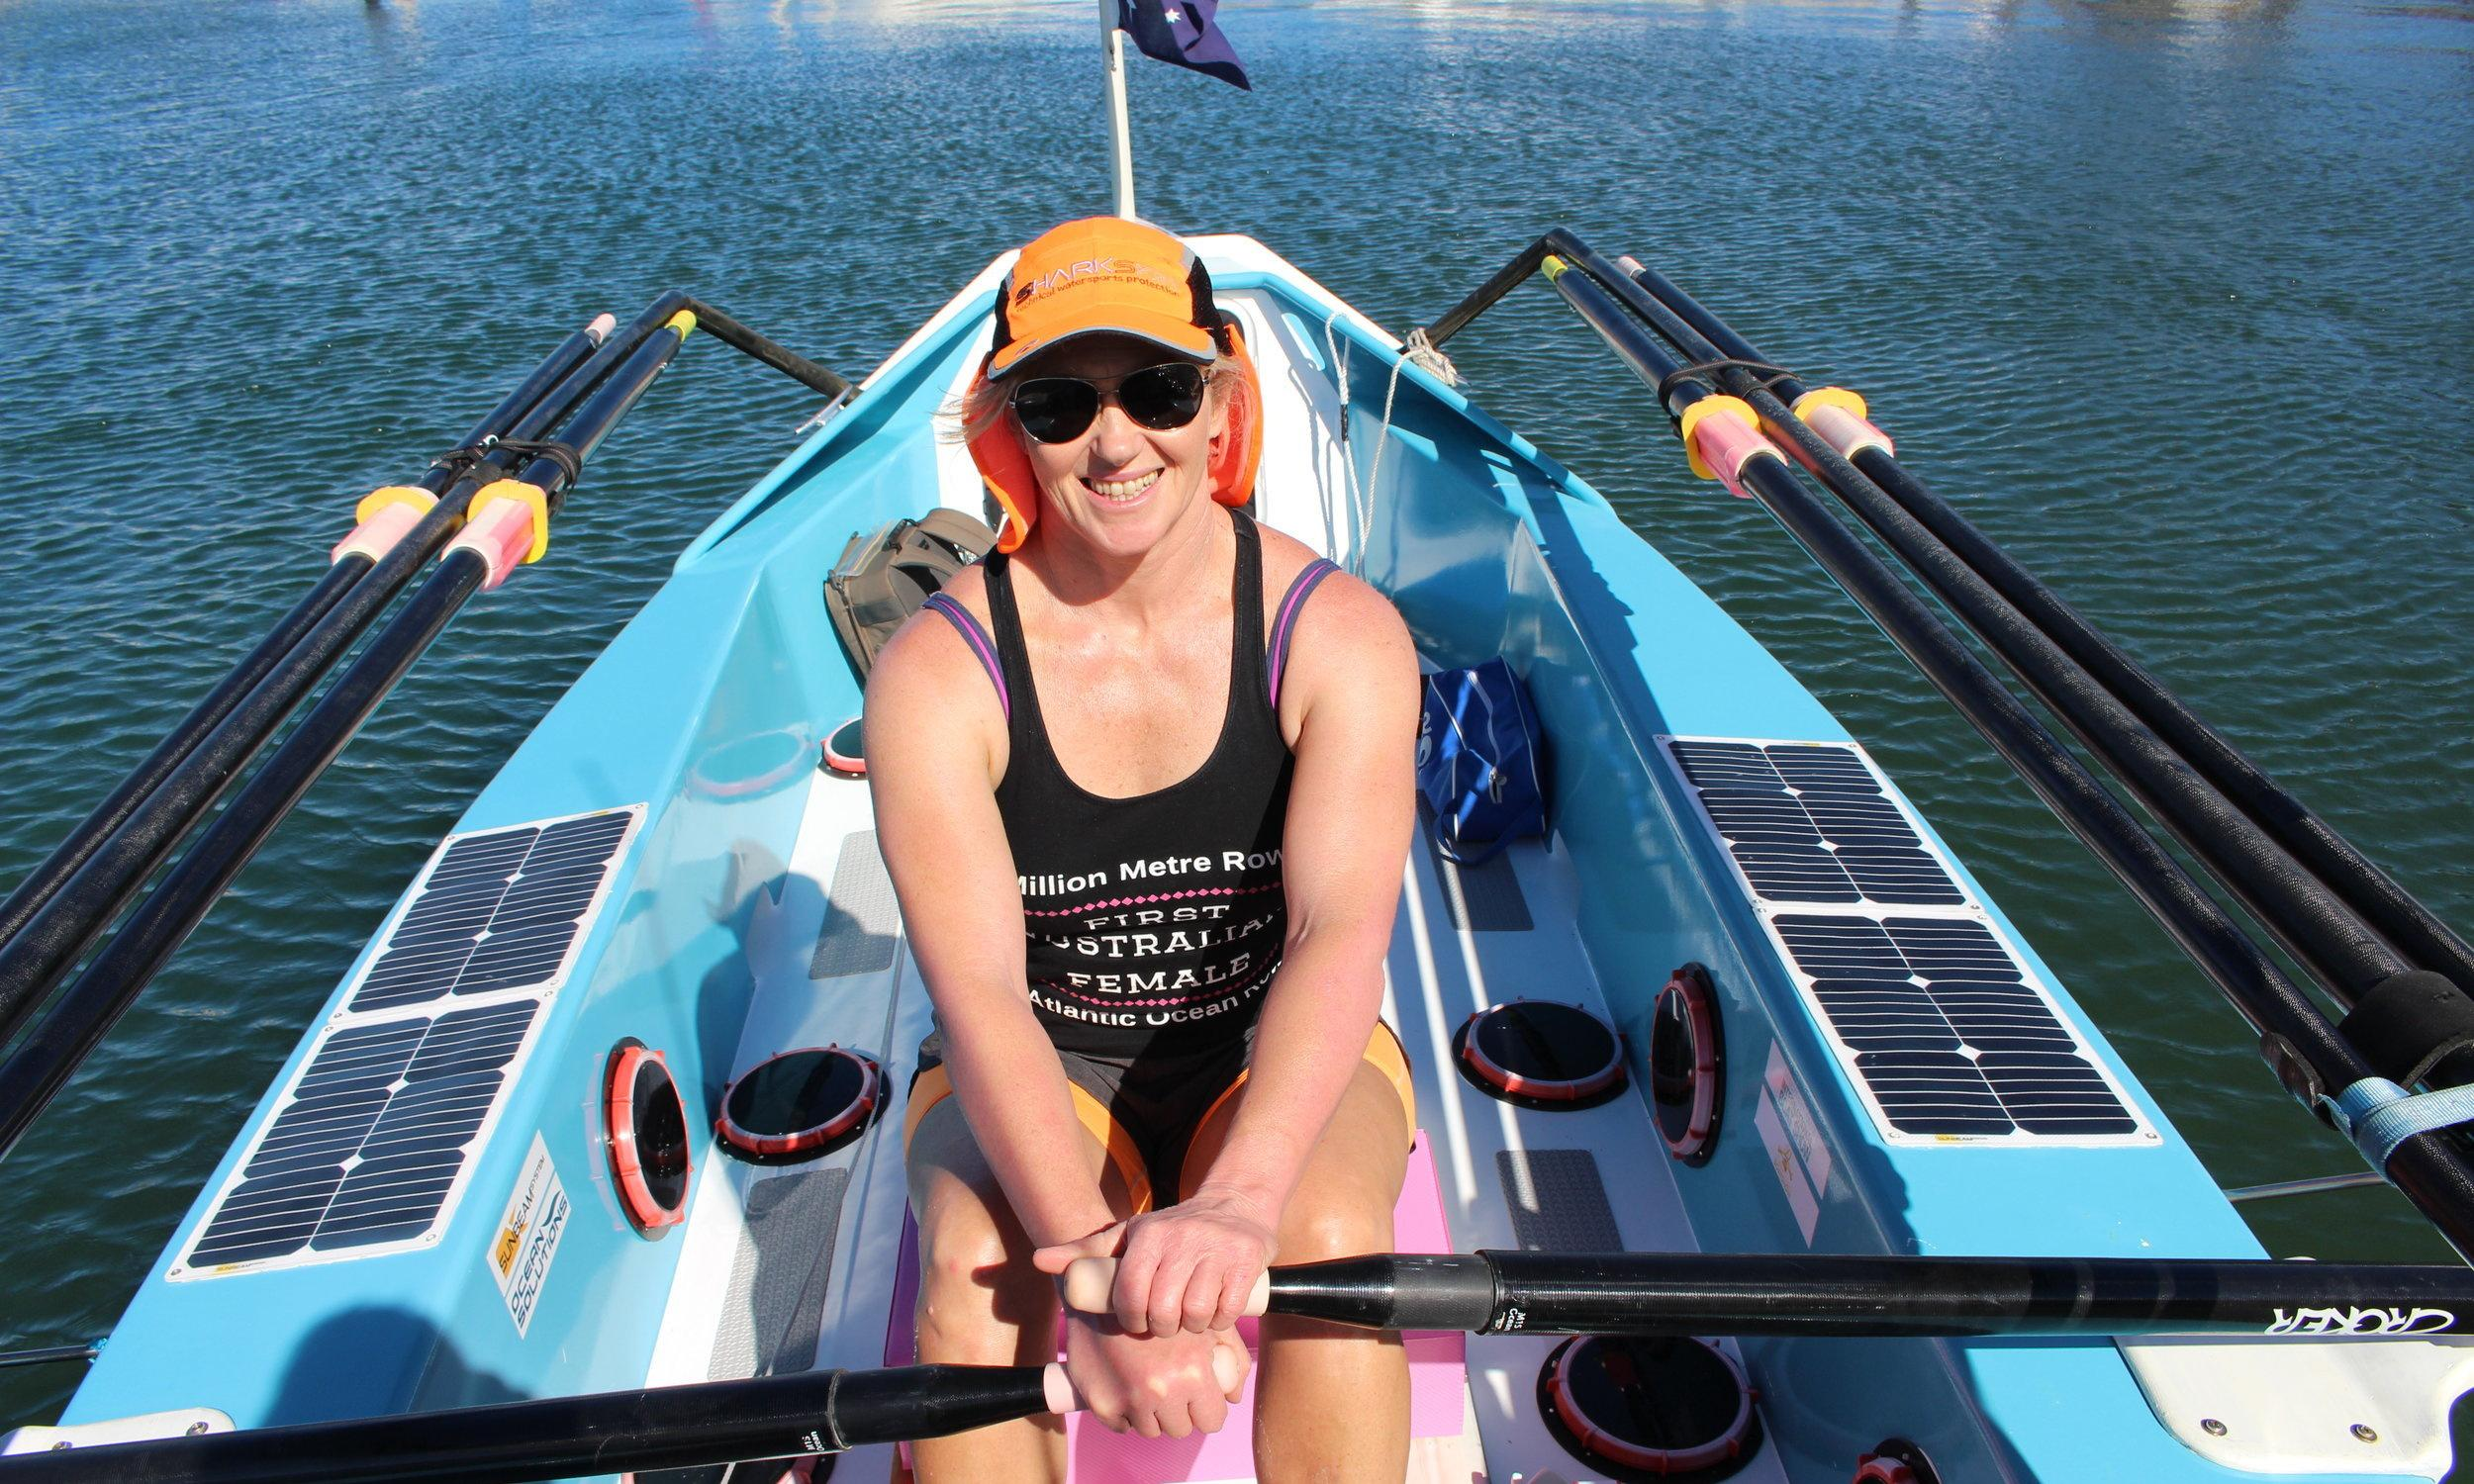 Michelle Lee becomes first Australian woman to cross ocean solo in a rowboat